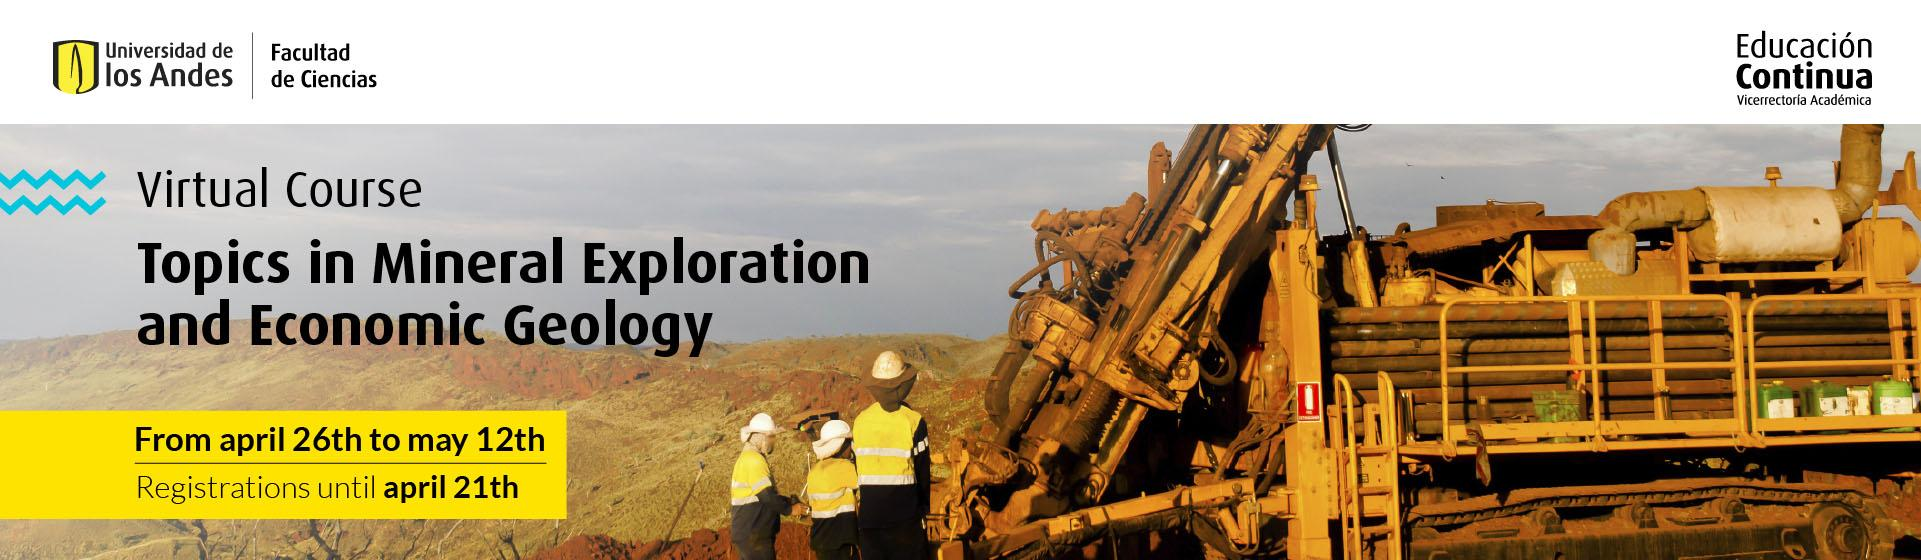 Topics in Mineral Exploration and Economic Geology - Uniandes